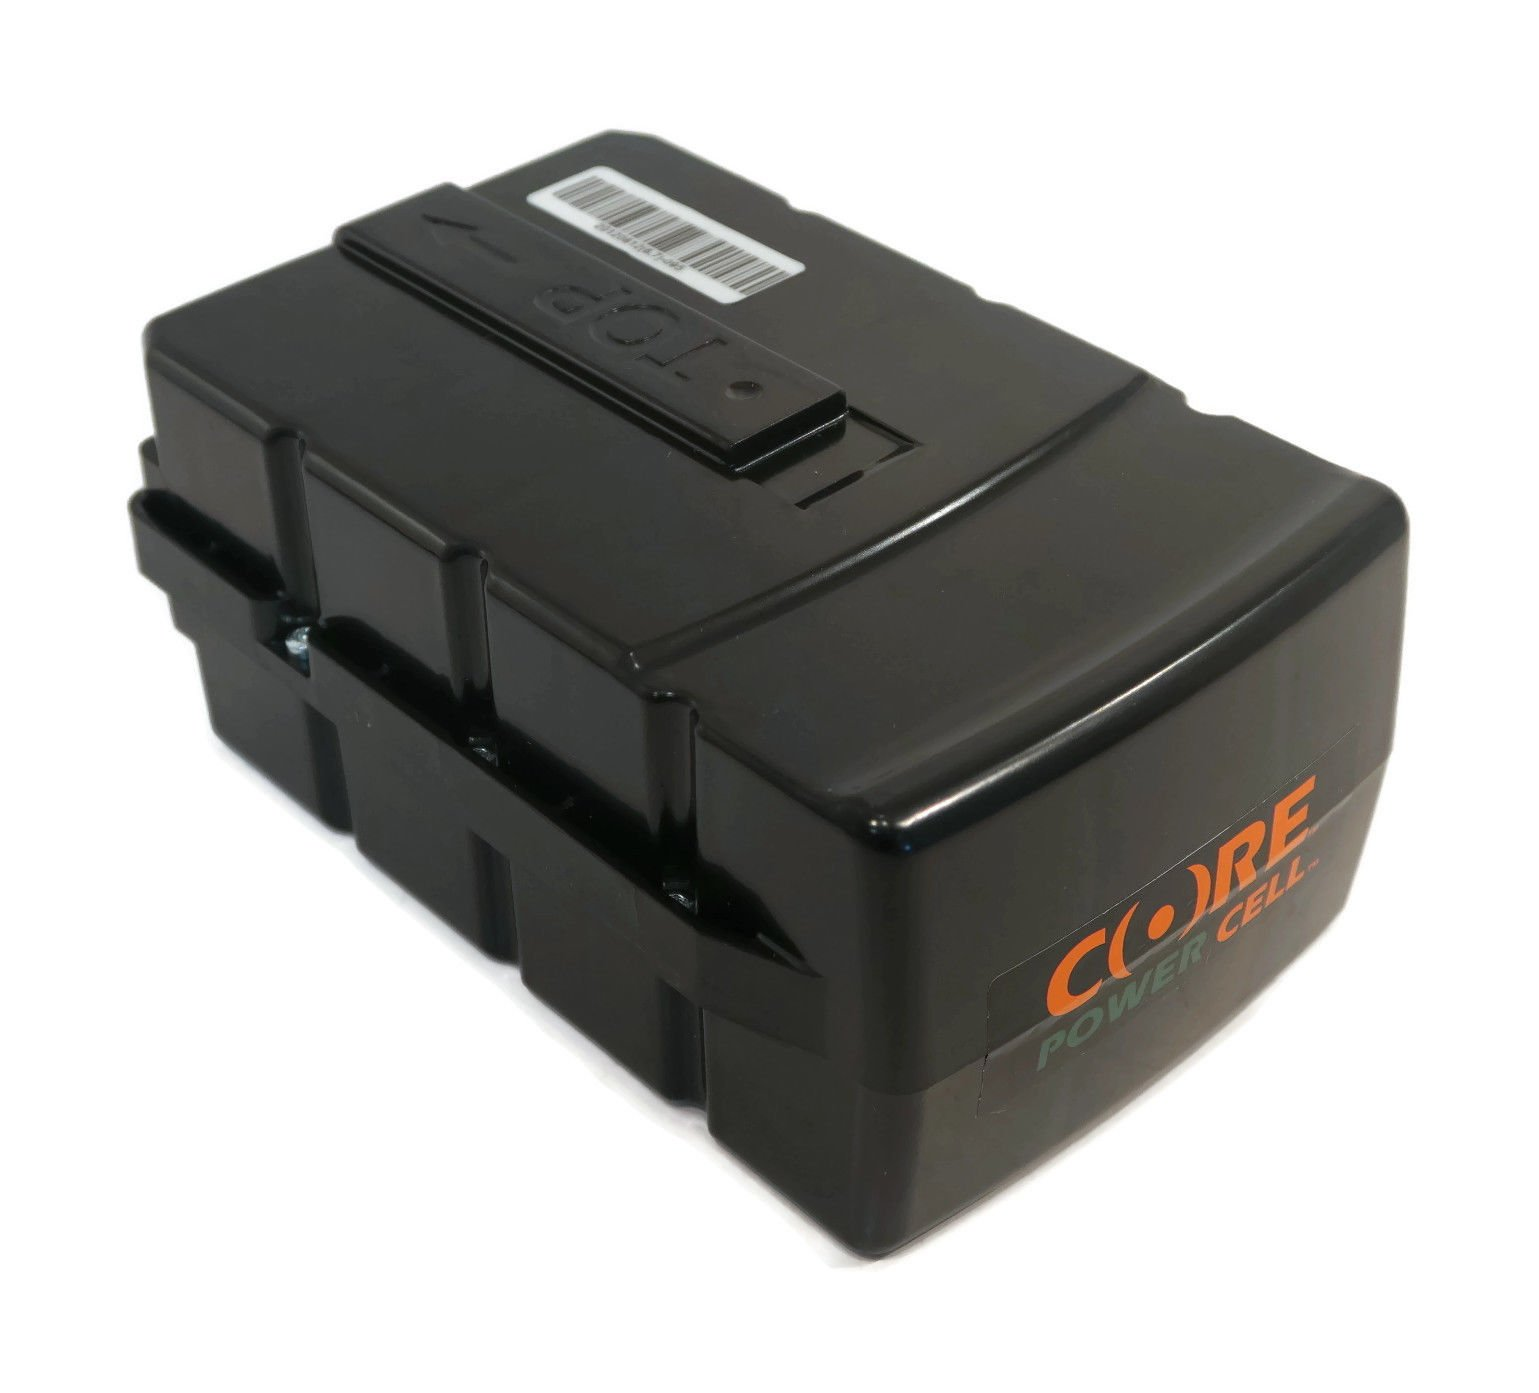 CORE CFC6500 Power Cell Battery for CGT400 Trimmer CDU400 CPL400 CPL410 CPL420